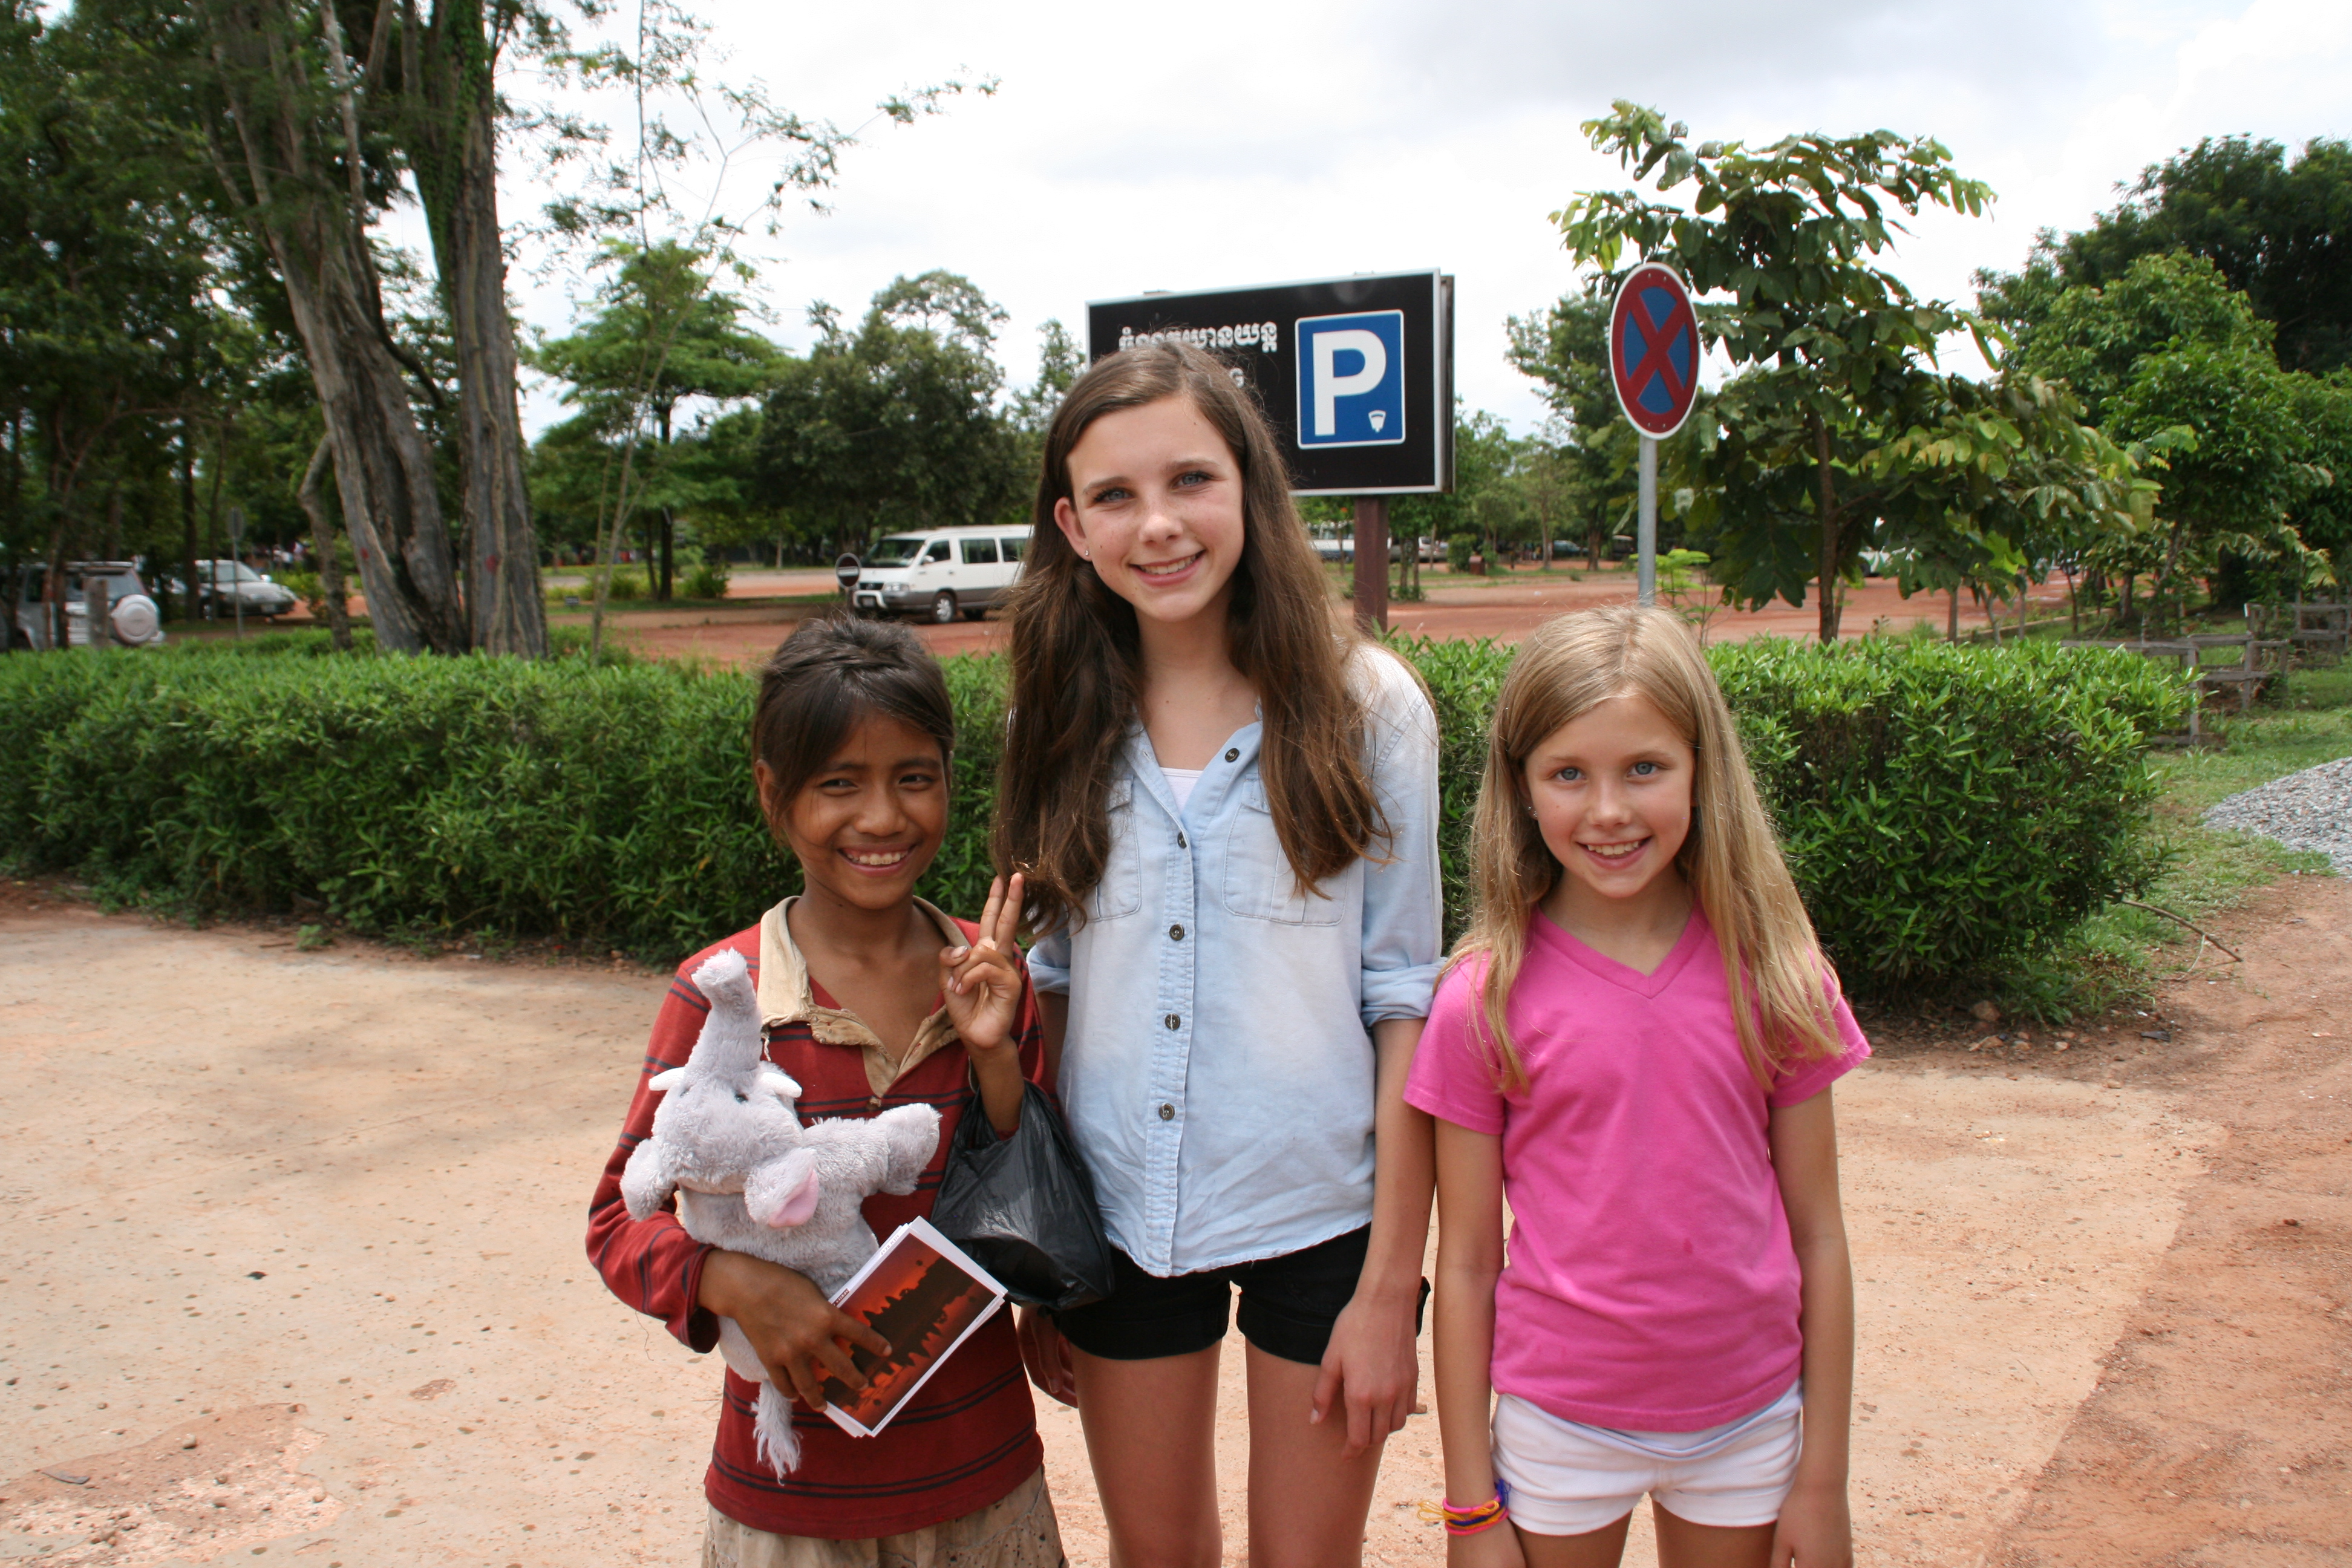 cambodia young girl images